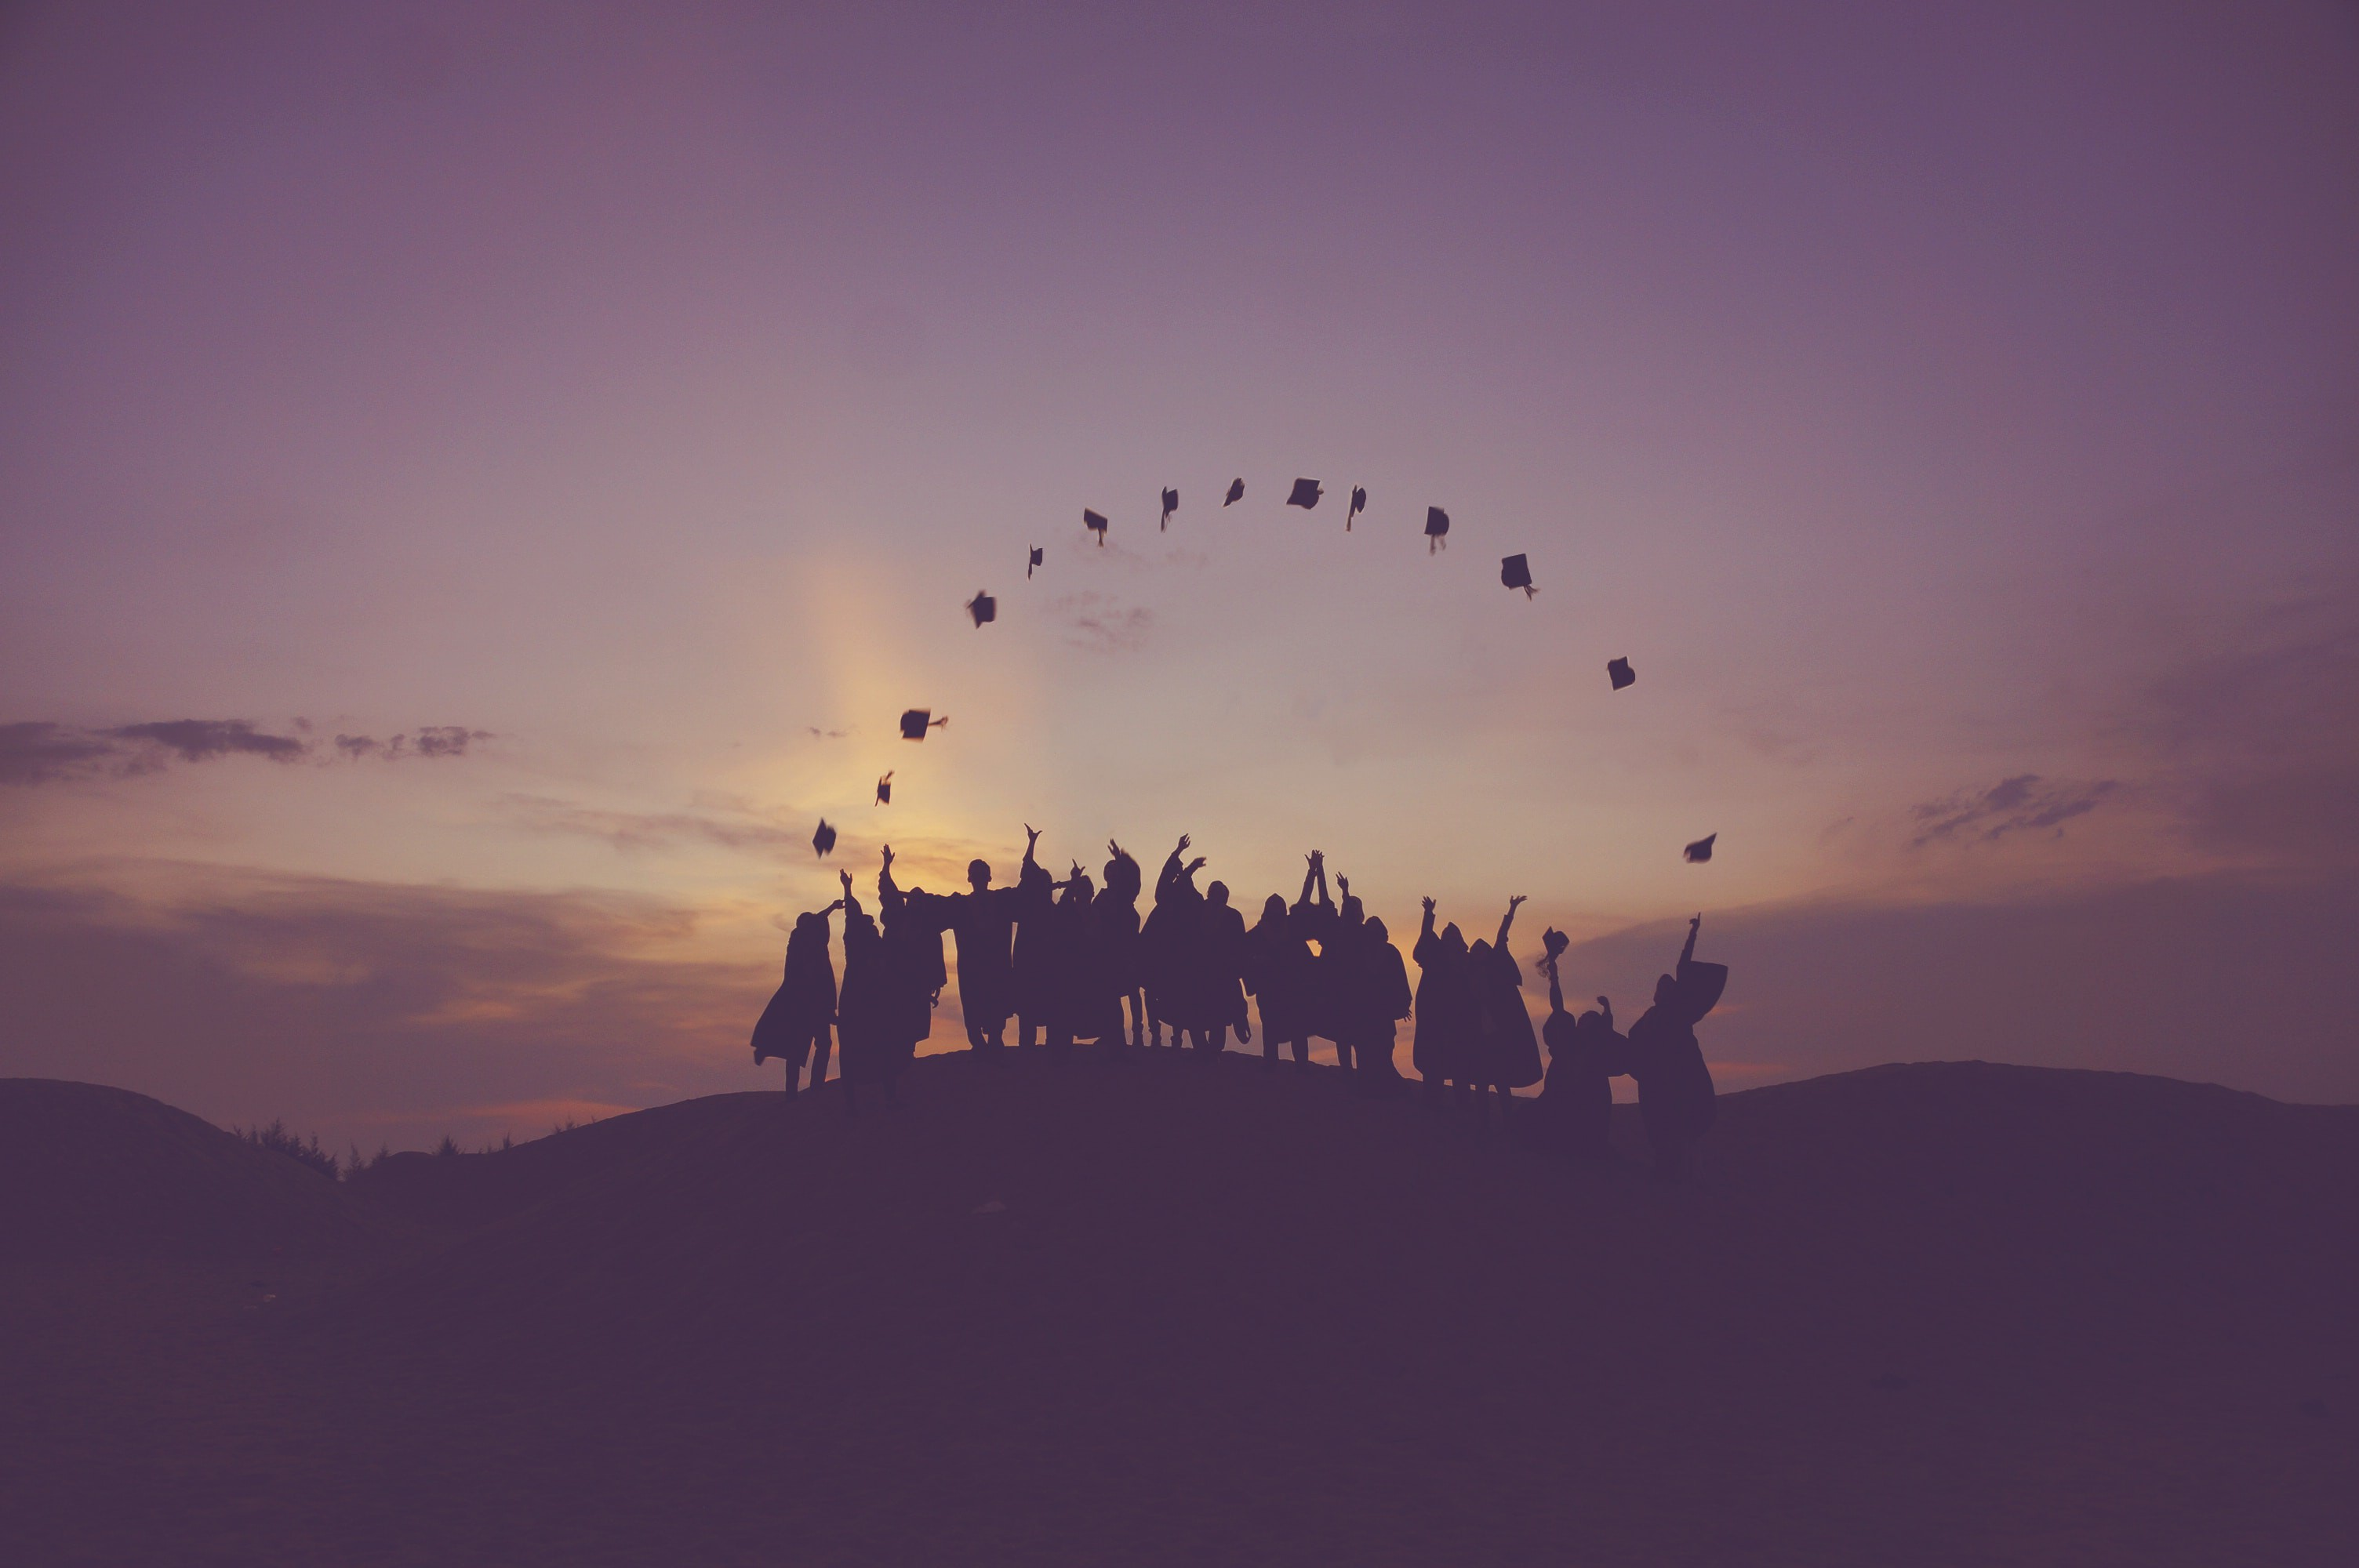 A group of graduates in silhouette throw their graduation caps in the air.